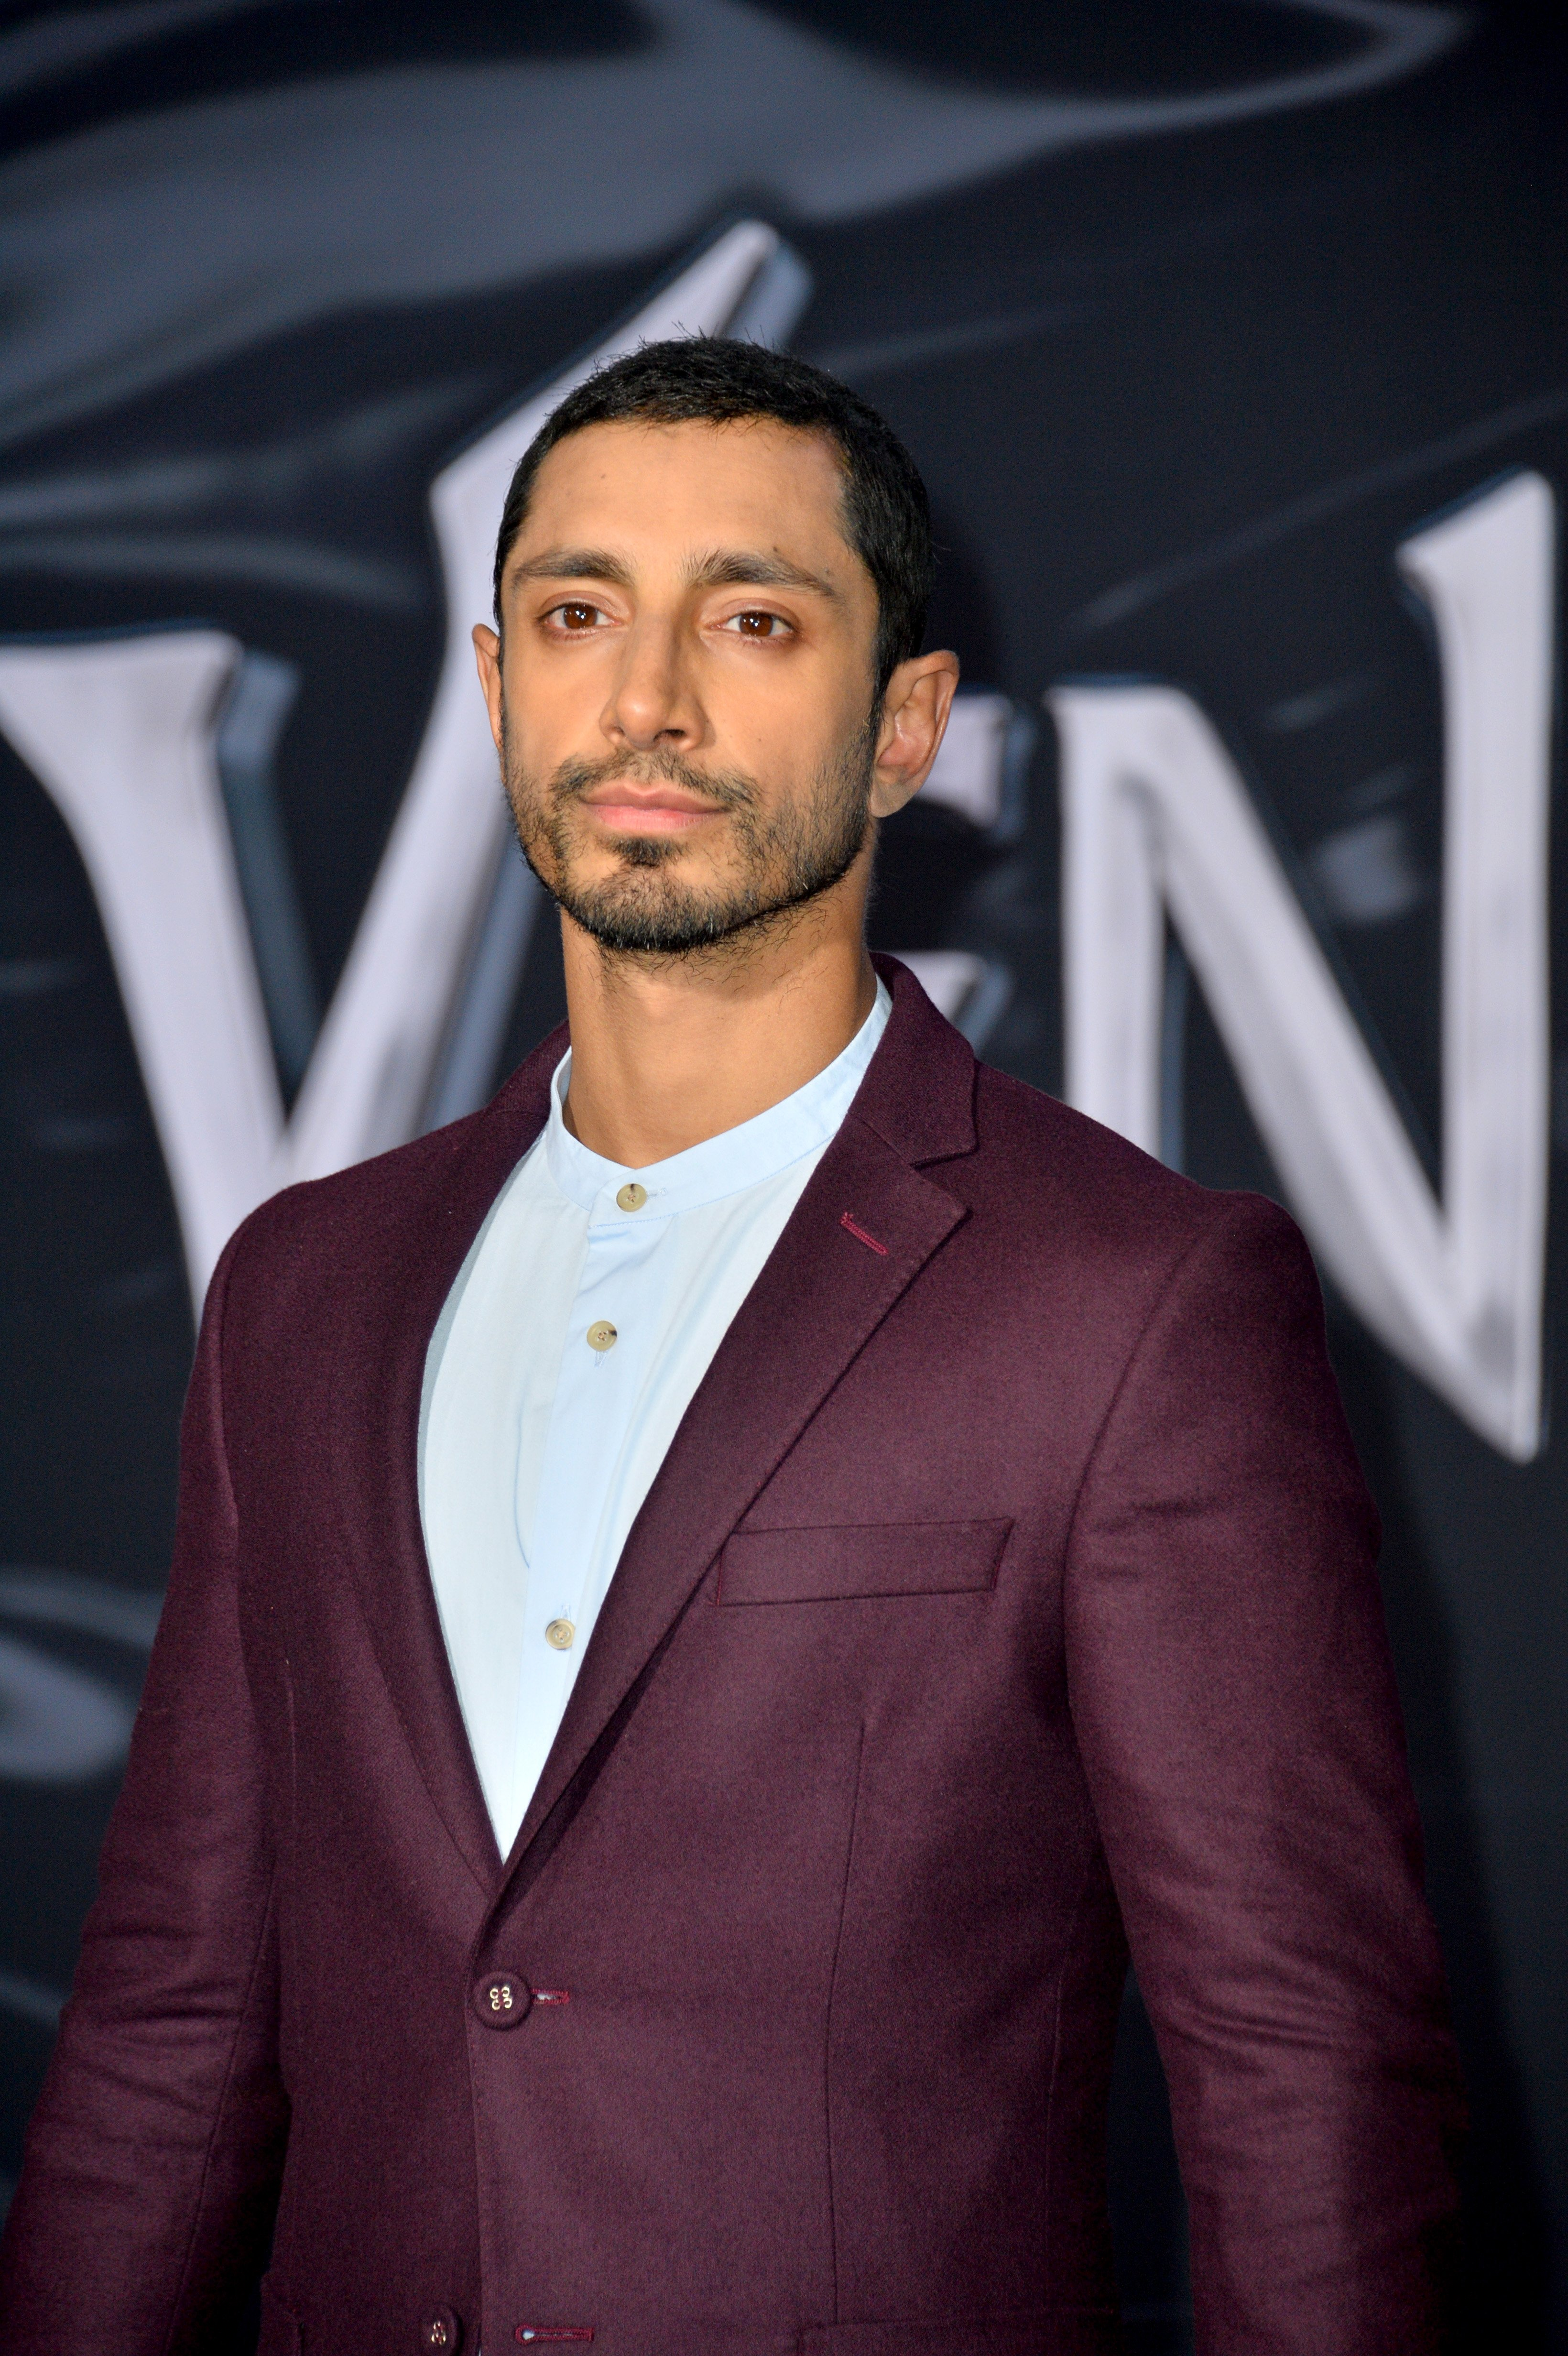 """Actor Riz Ahmed at the world premiere of """"Venom"""" at the Regency Village Theater on October 1, 2018 in Los Angeles   Photo: Shutterstock"""